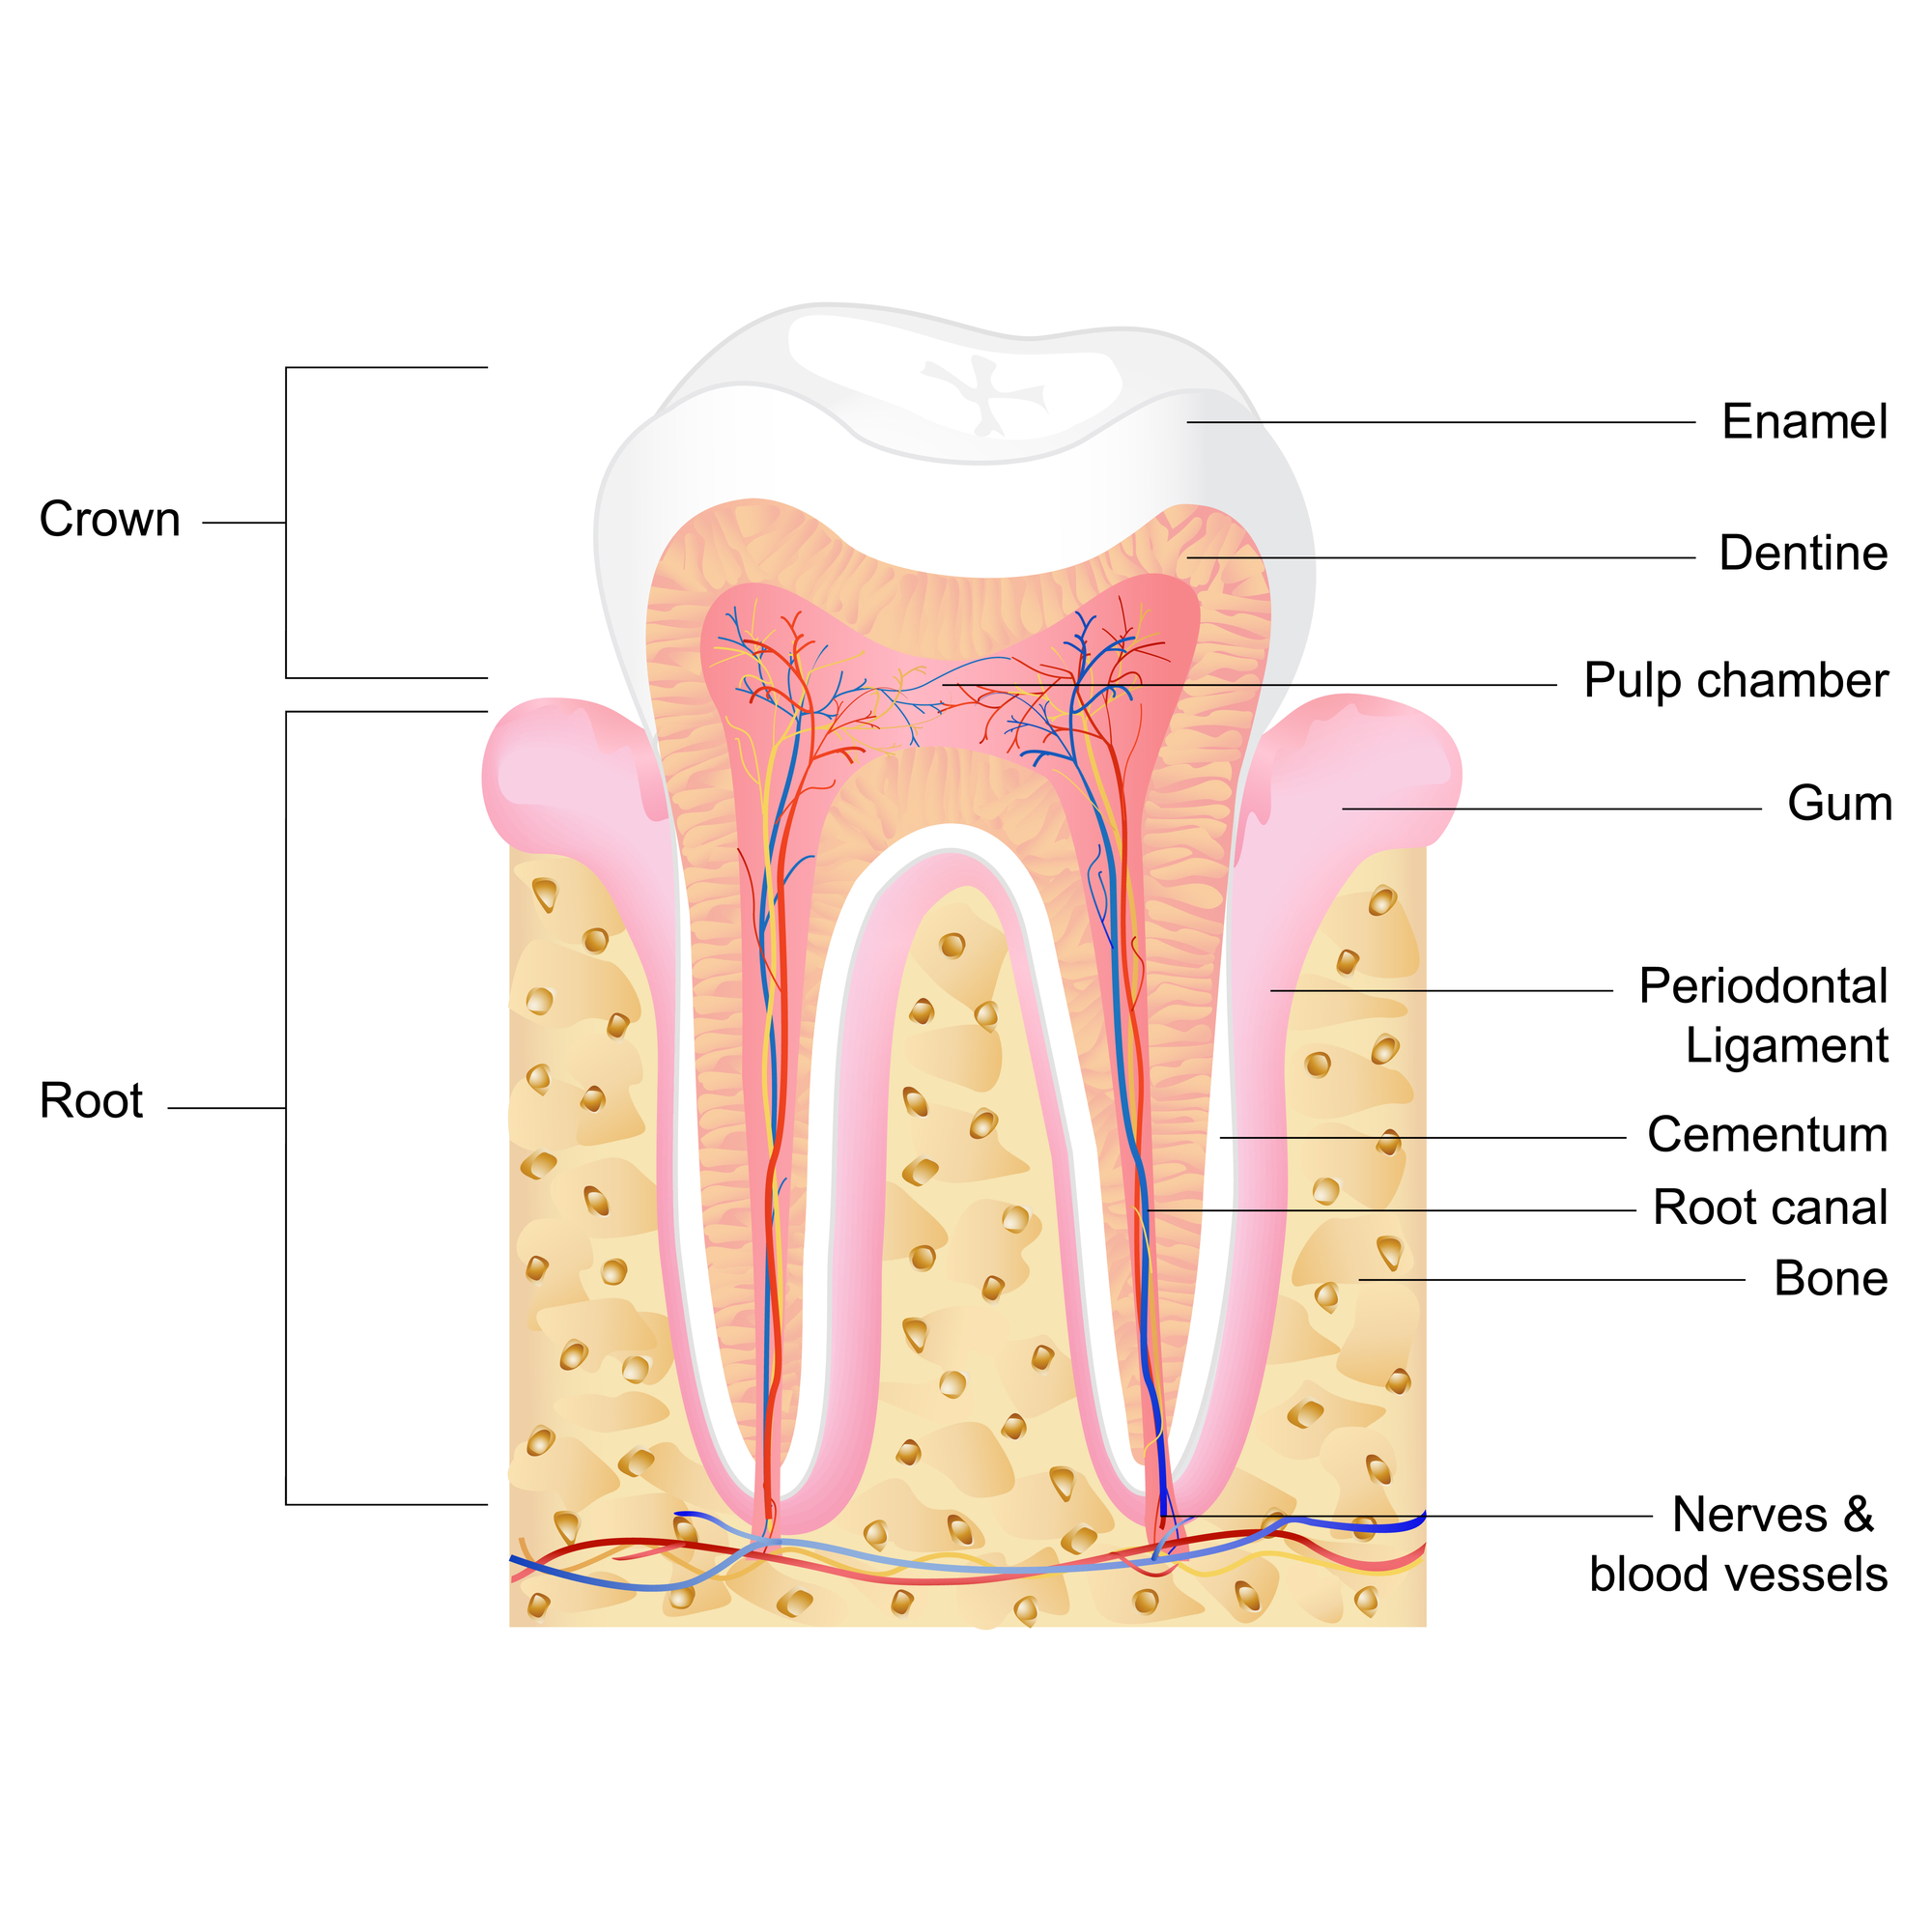 Where can I get more information about tooth extraction west palm beach?